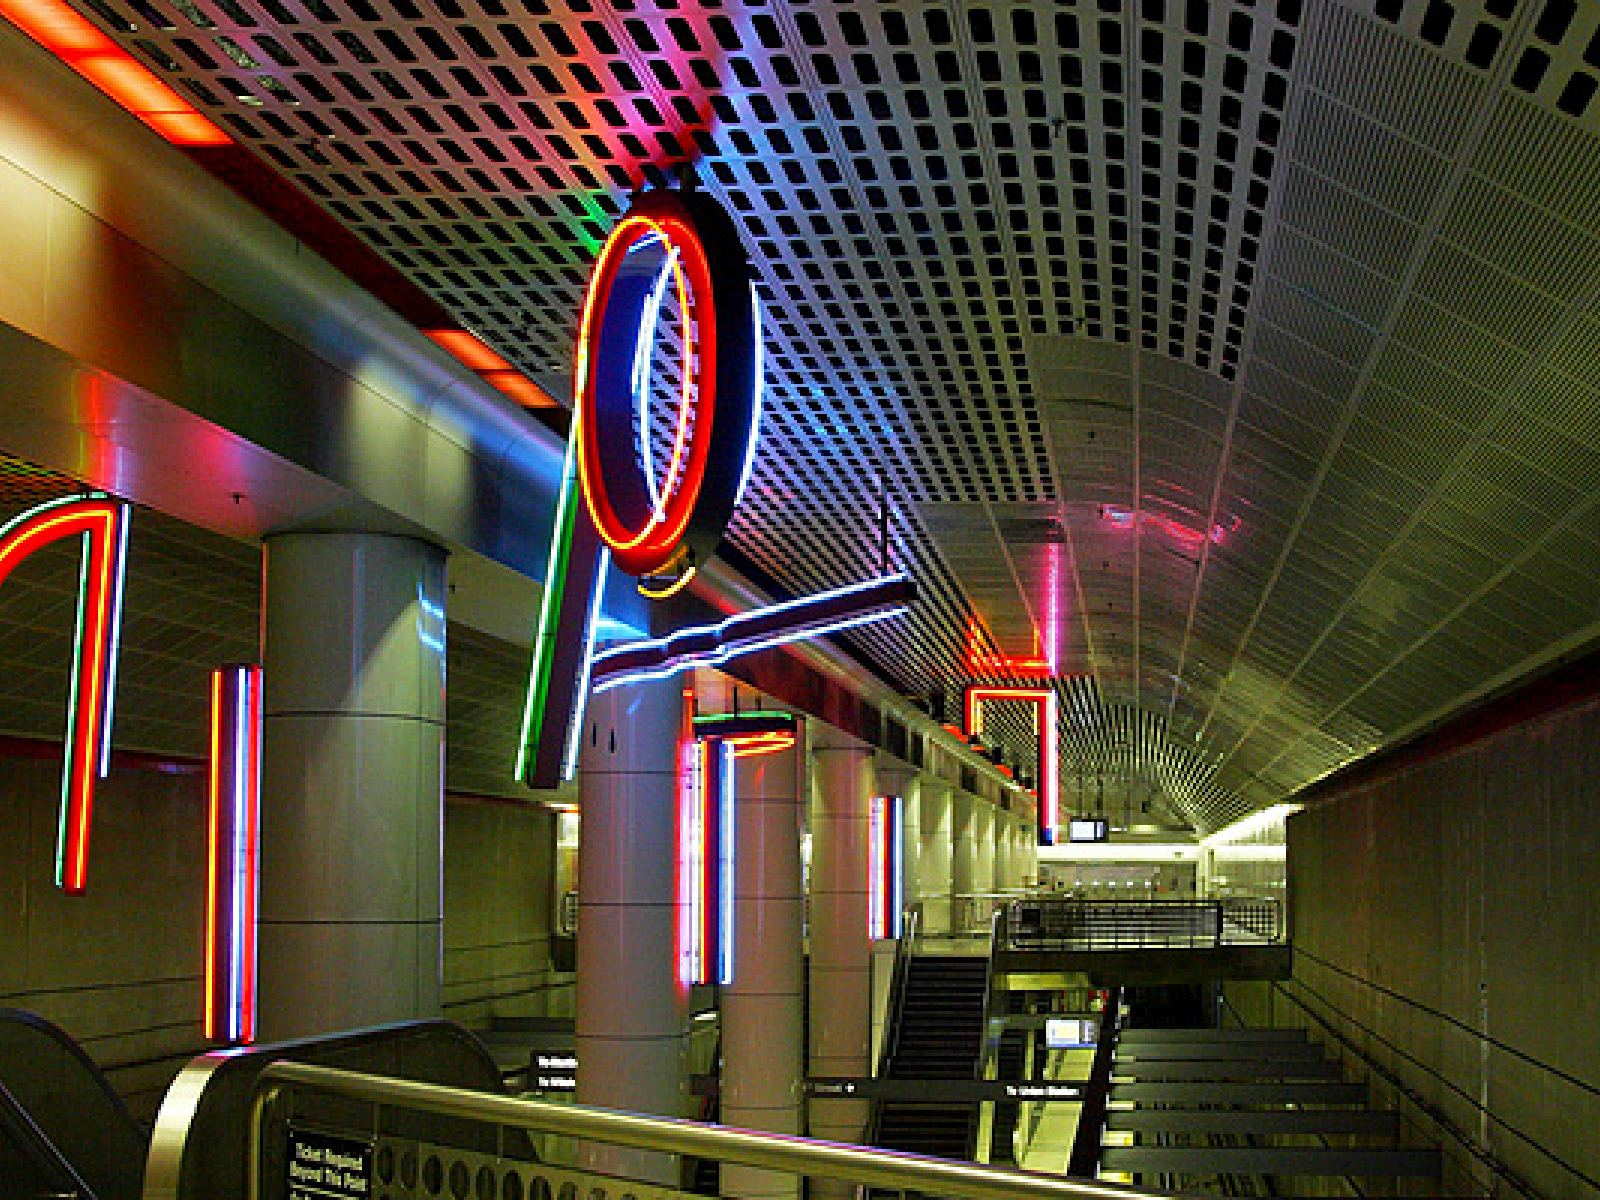 Main image for article titled Metro Public Art in Los Angeles: Art of the Purple Line